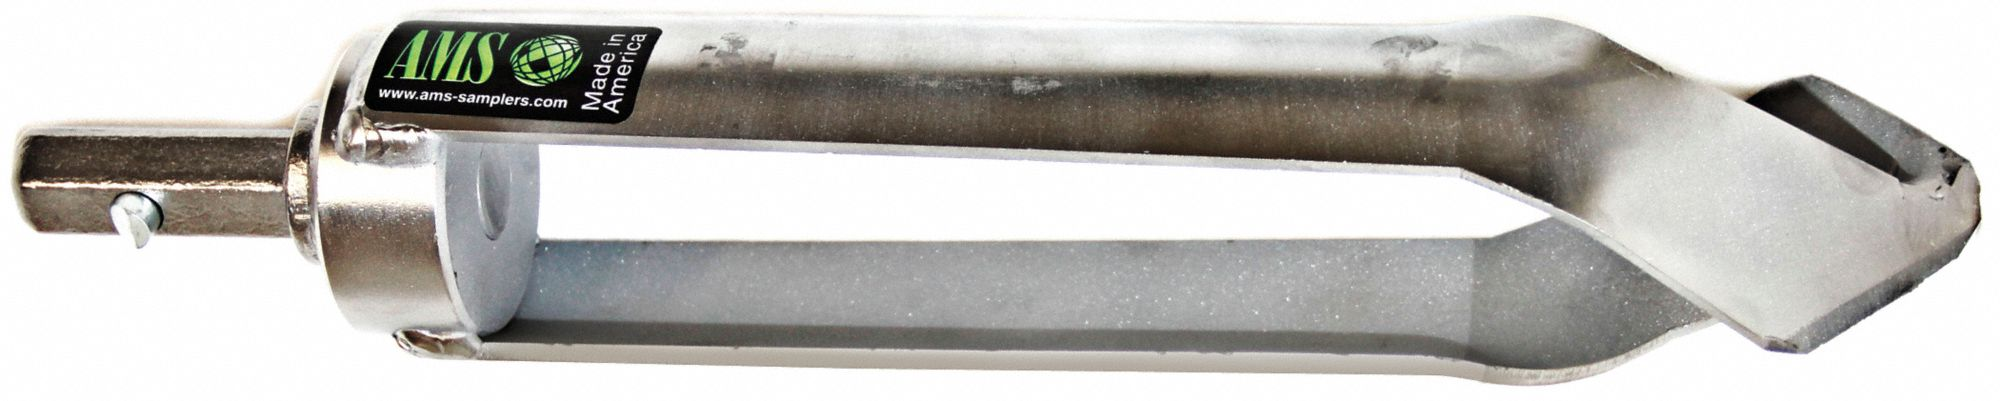 Auger,  2 1/2 in Dia. (In.),  Carbon Steel,  Quick Connect,  Quick Soil Penetration